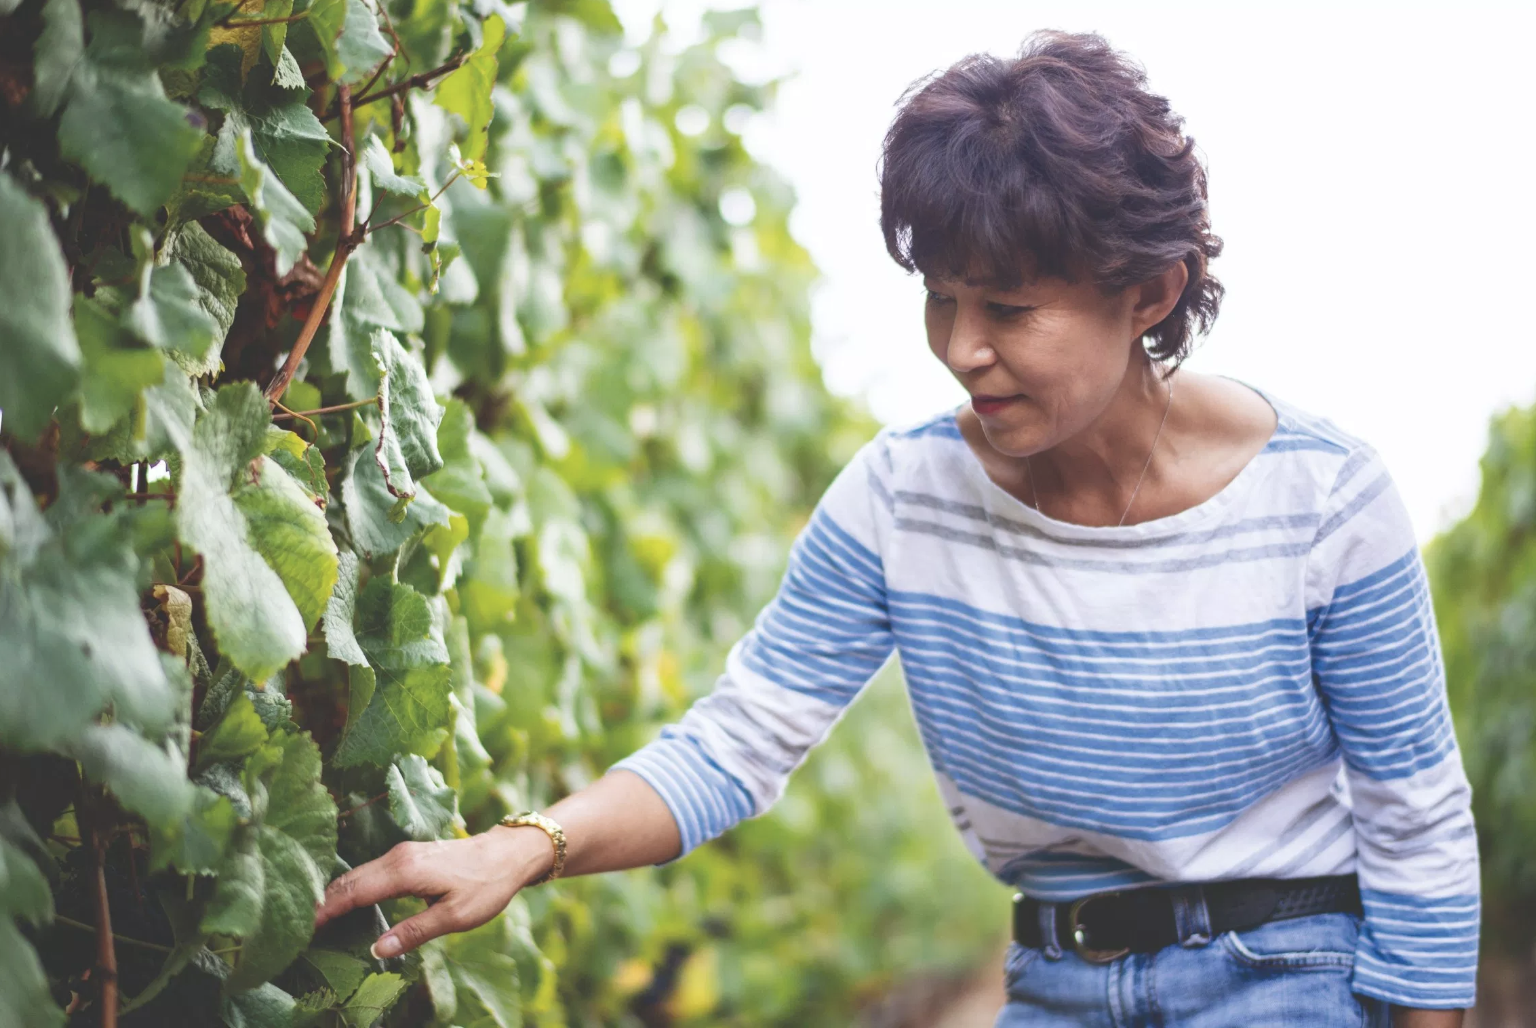 Epicure Asia - Akiko Freeman shares her journey into winemaking for Freeman winery.